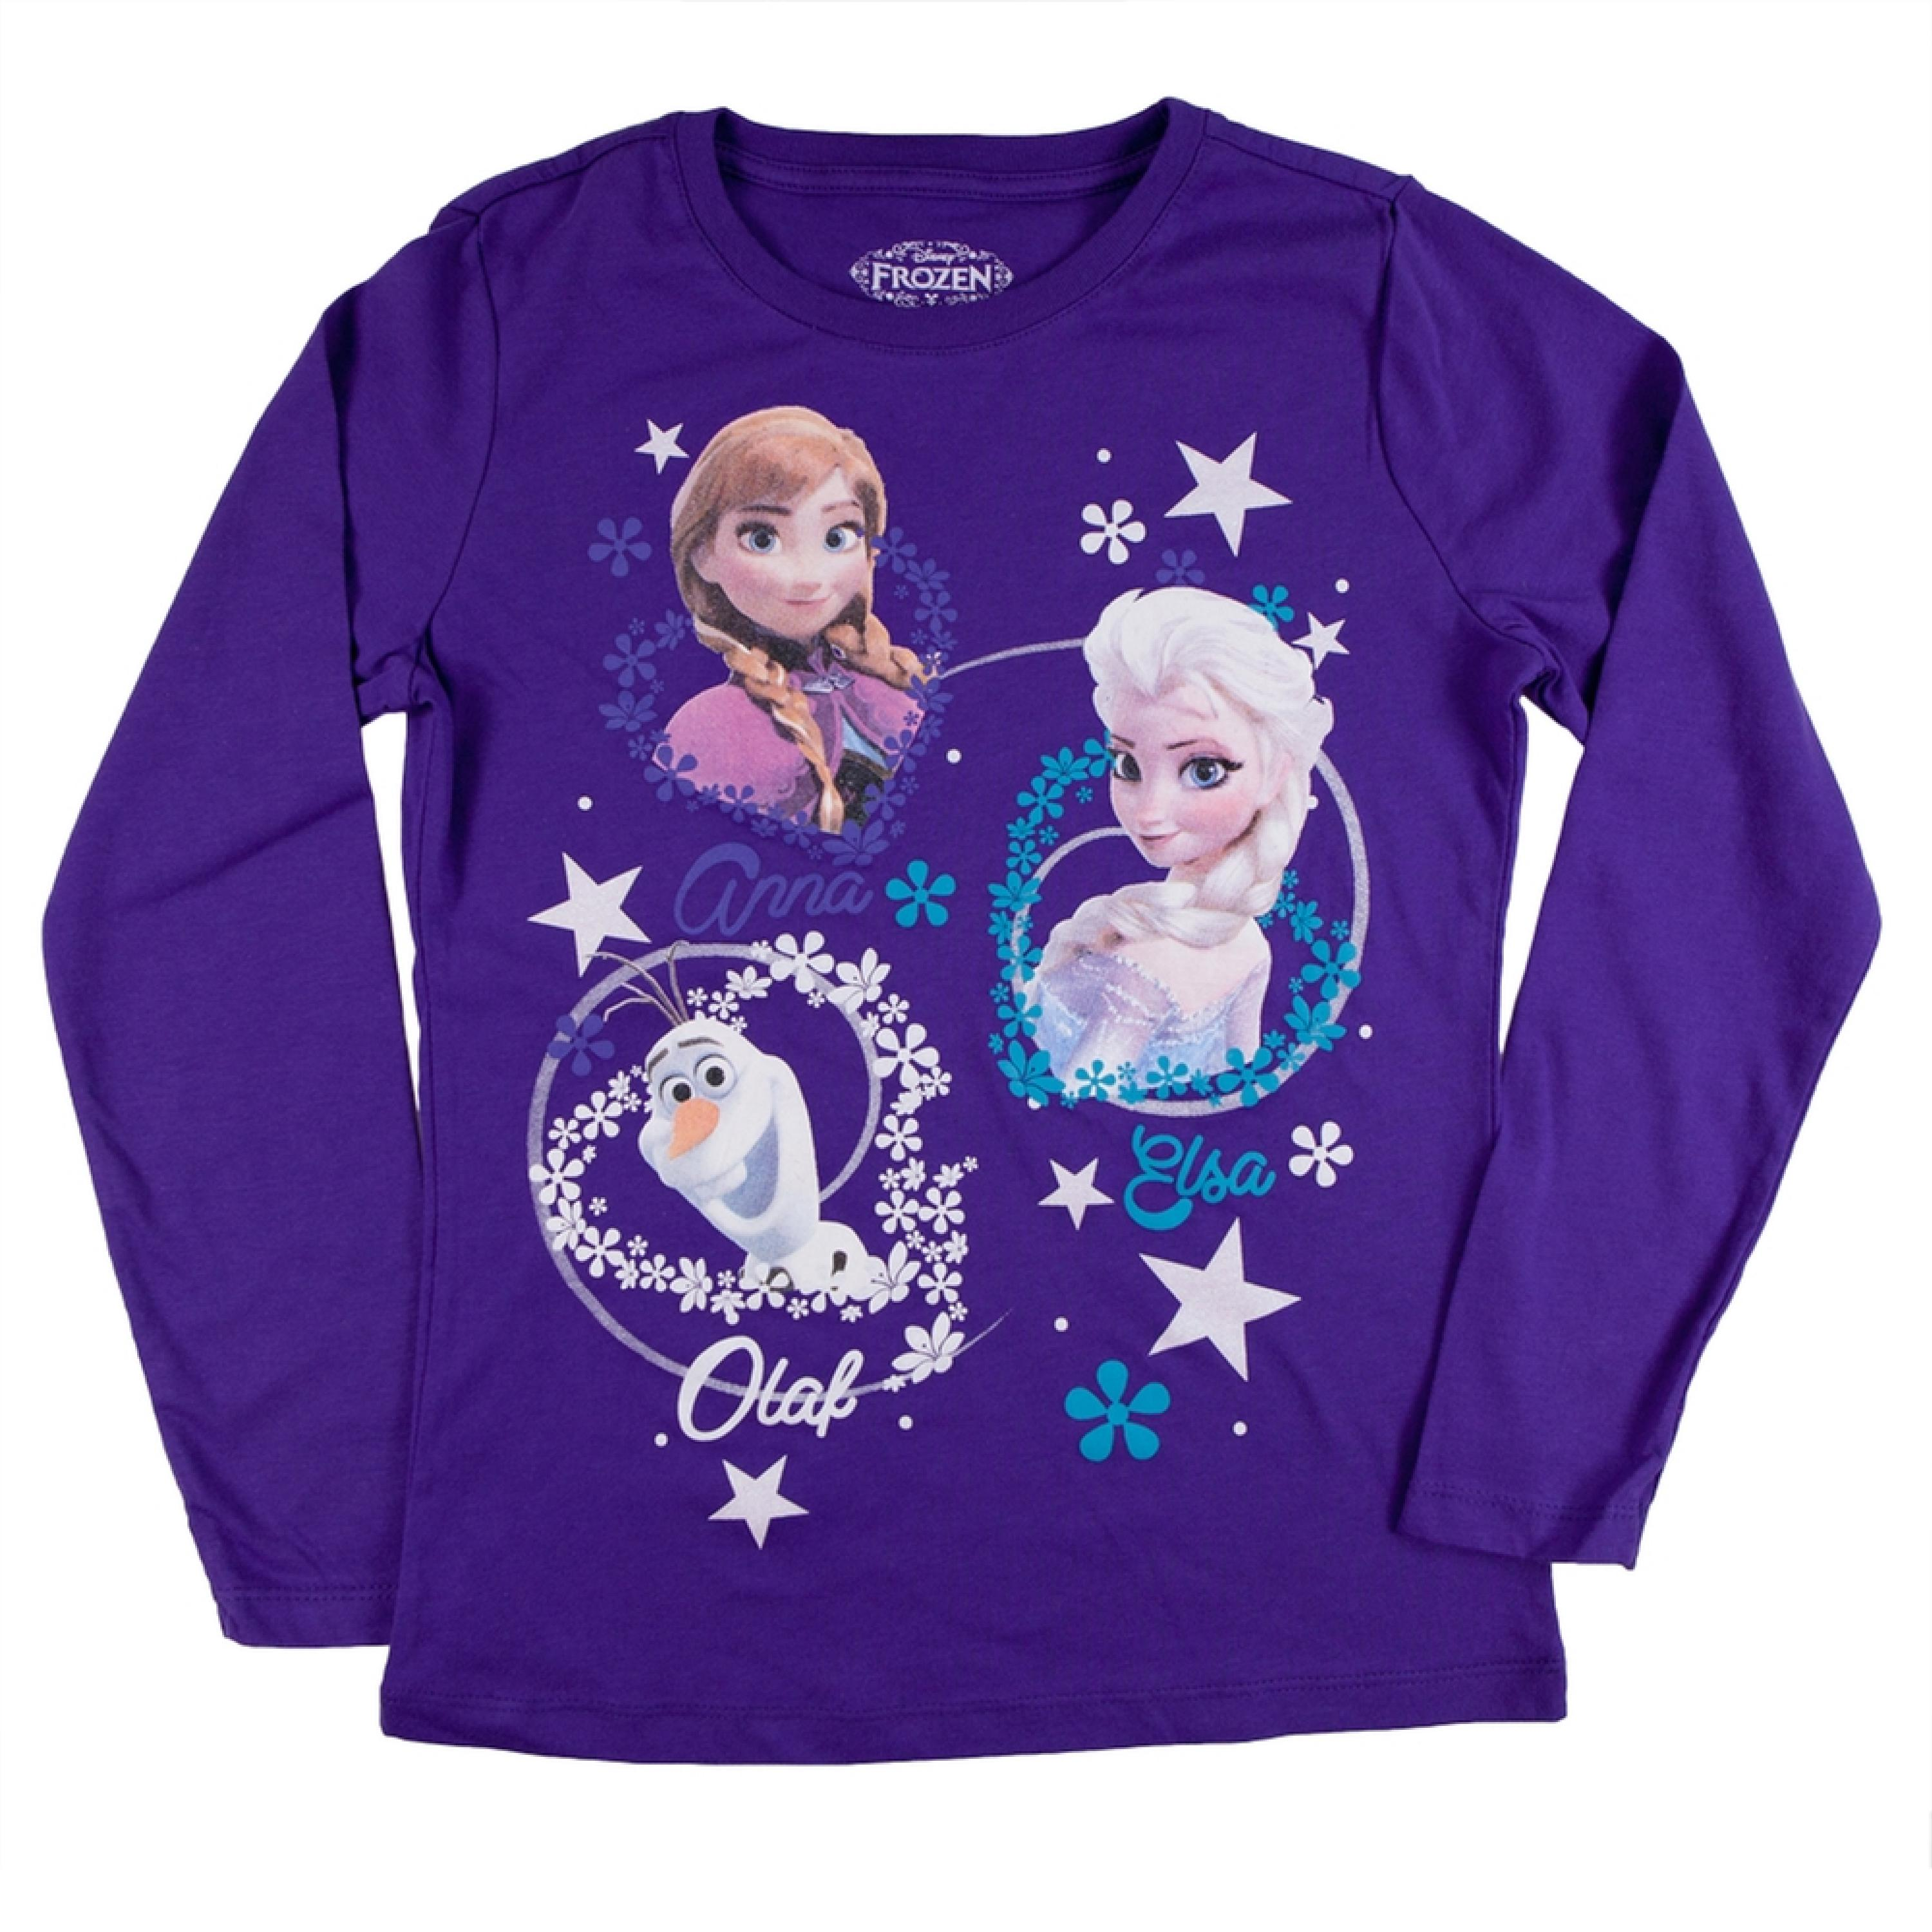 Group Flakes & Hearts Girls Youth Purple Long Sleeve T-Shirt